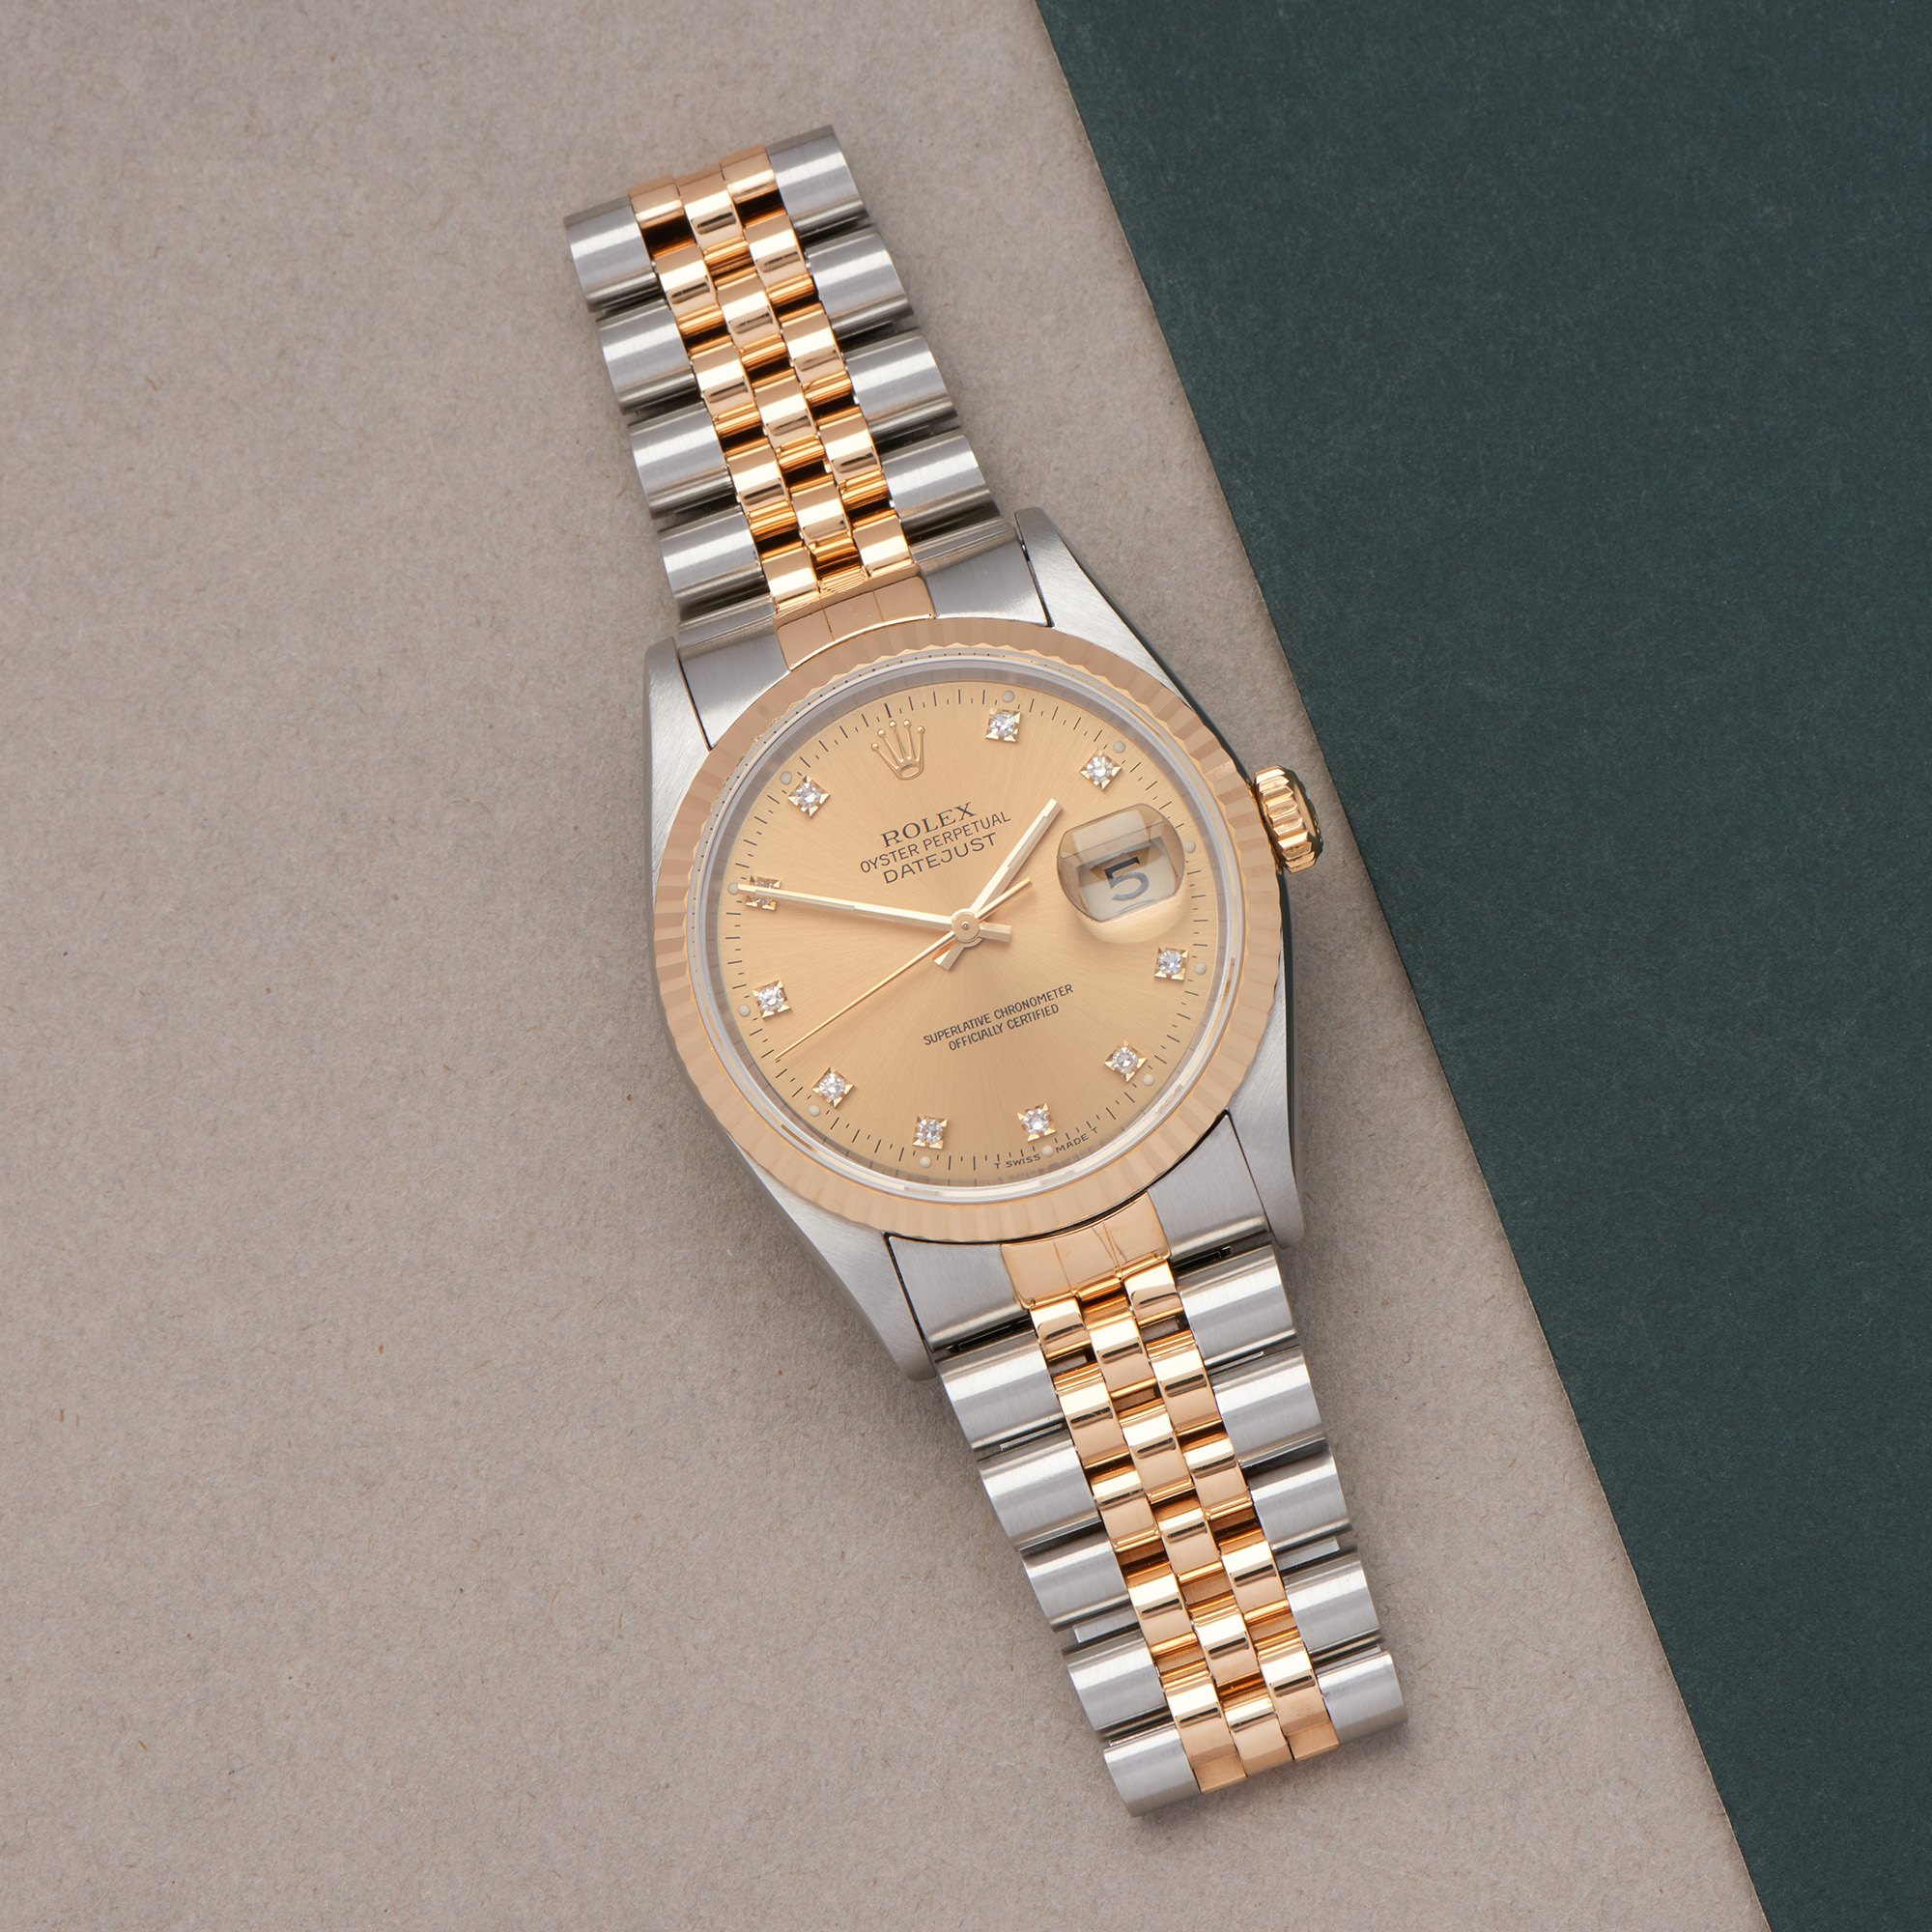 Rolex Datejust 36 18K Yellow Gold & Stainless Steel 16233G